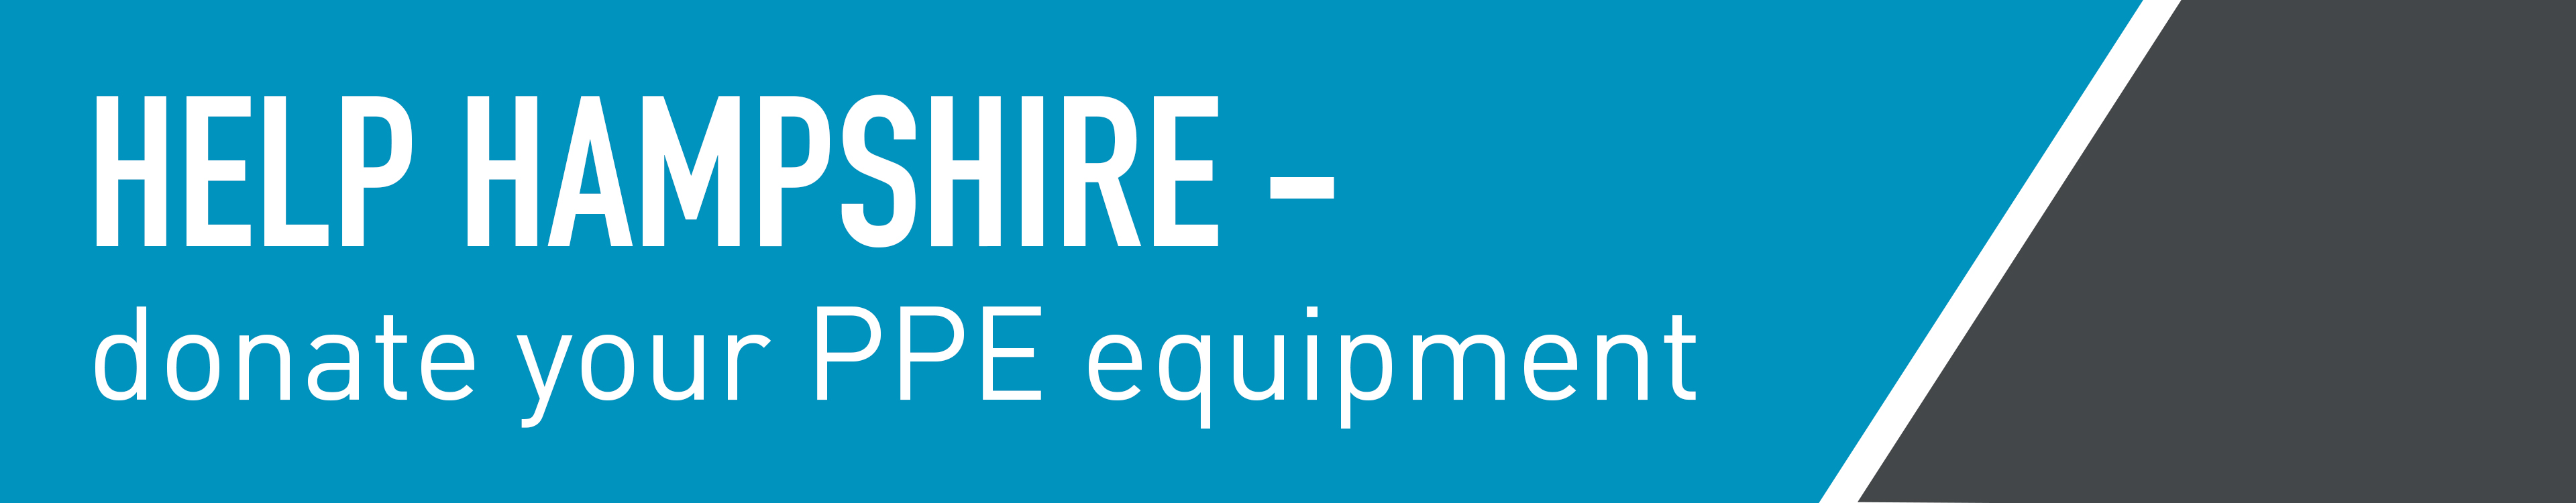 Help Hampshire - donate your PPE equipment